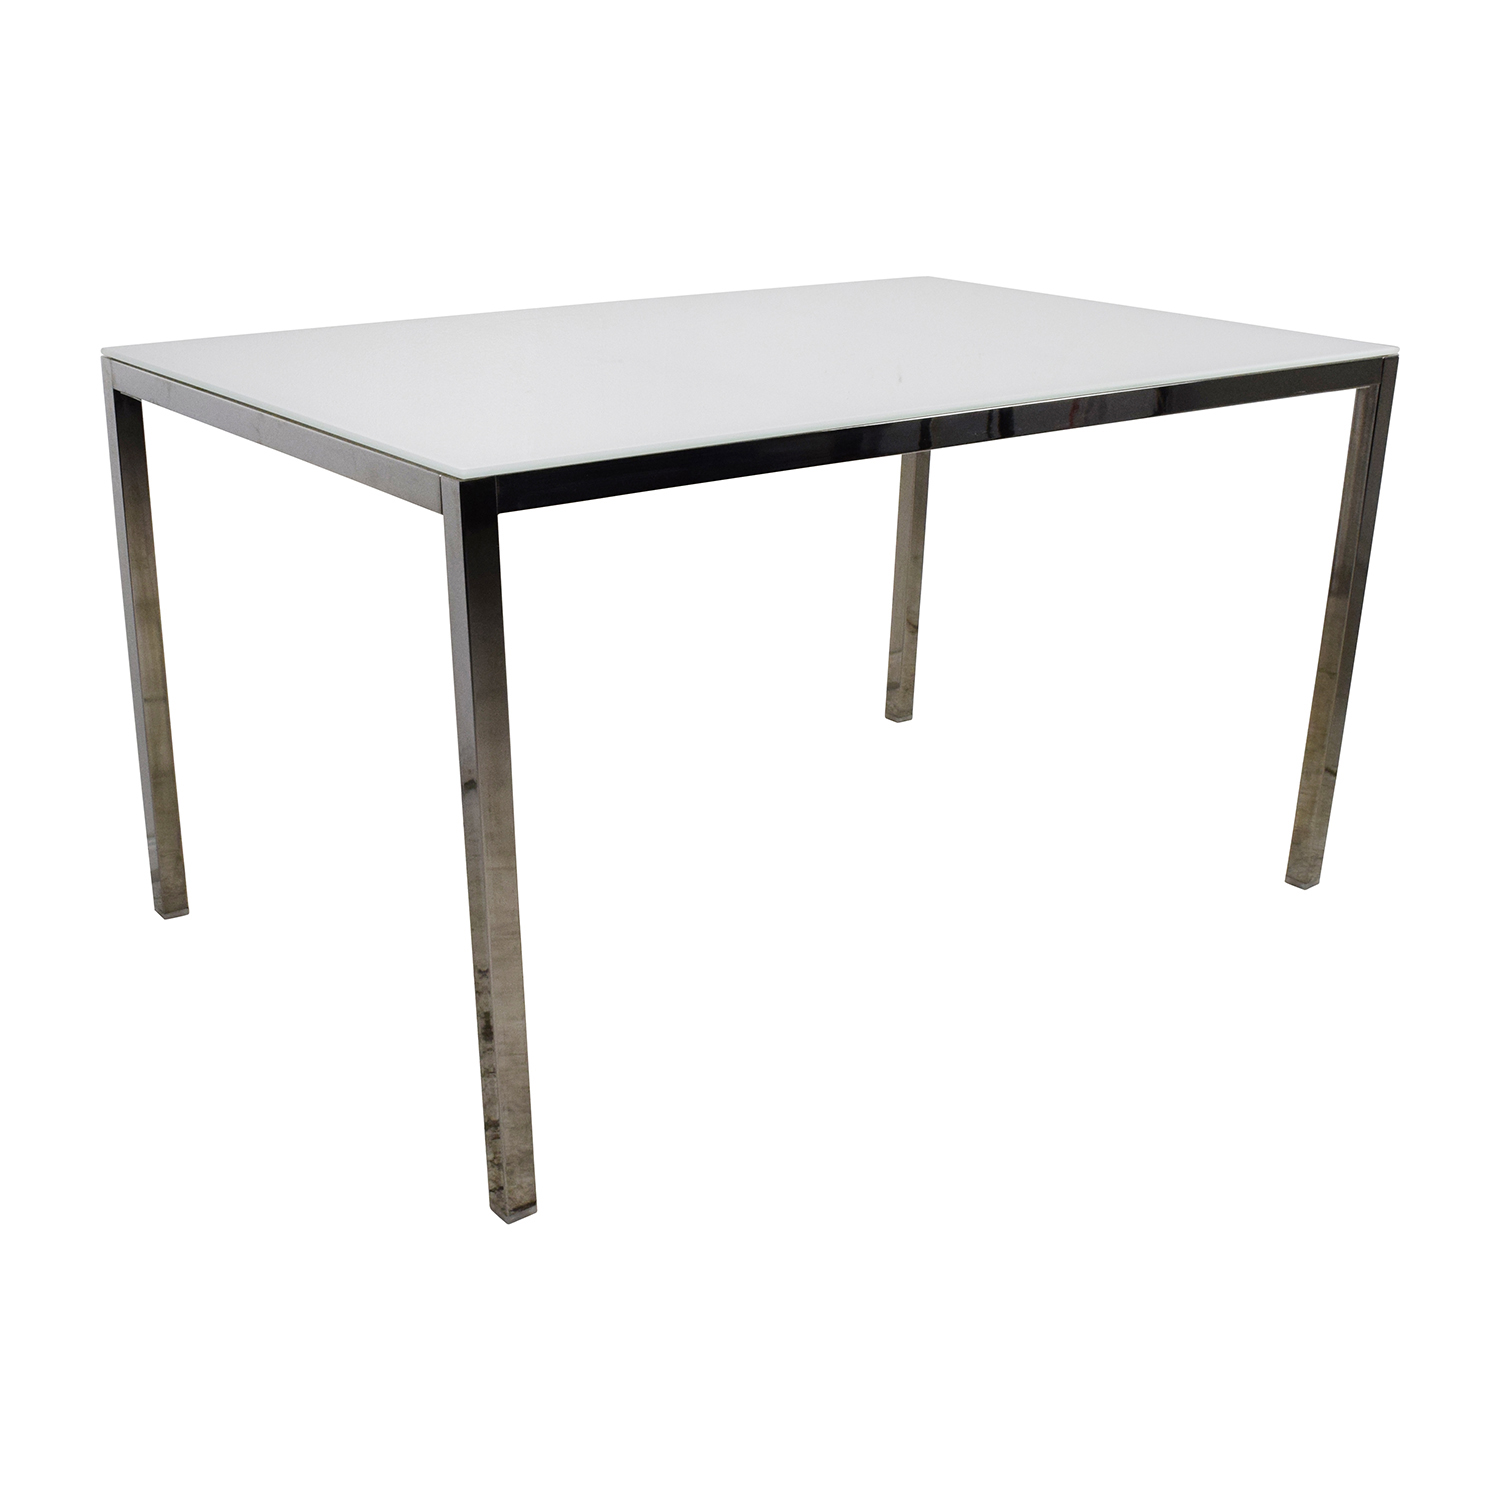 Ikea Breakfast Table: IKEA IKEA Torsby Large Glass Top Dining Table